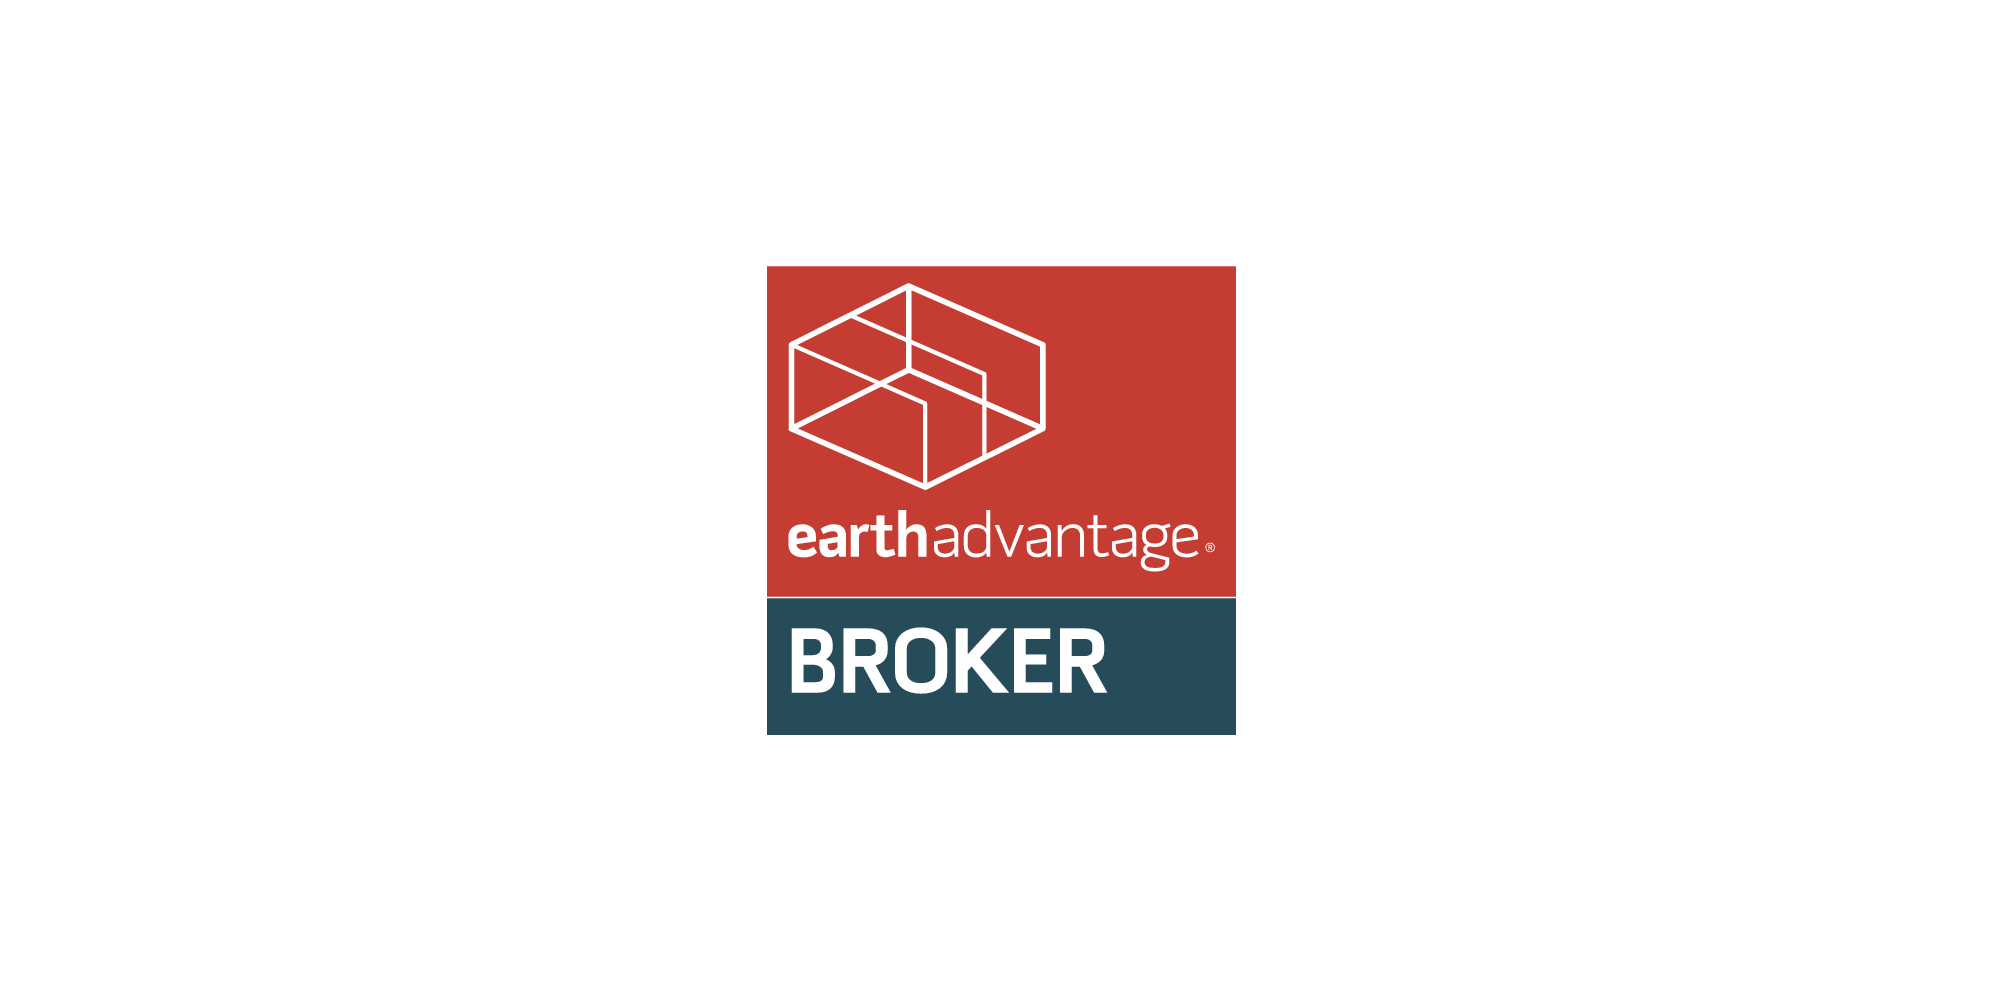 Earth Advantage Broker - Accredited by Earth Advantage to identify and advise on green features with a home.